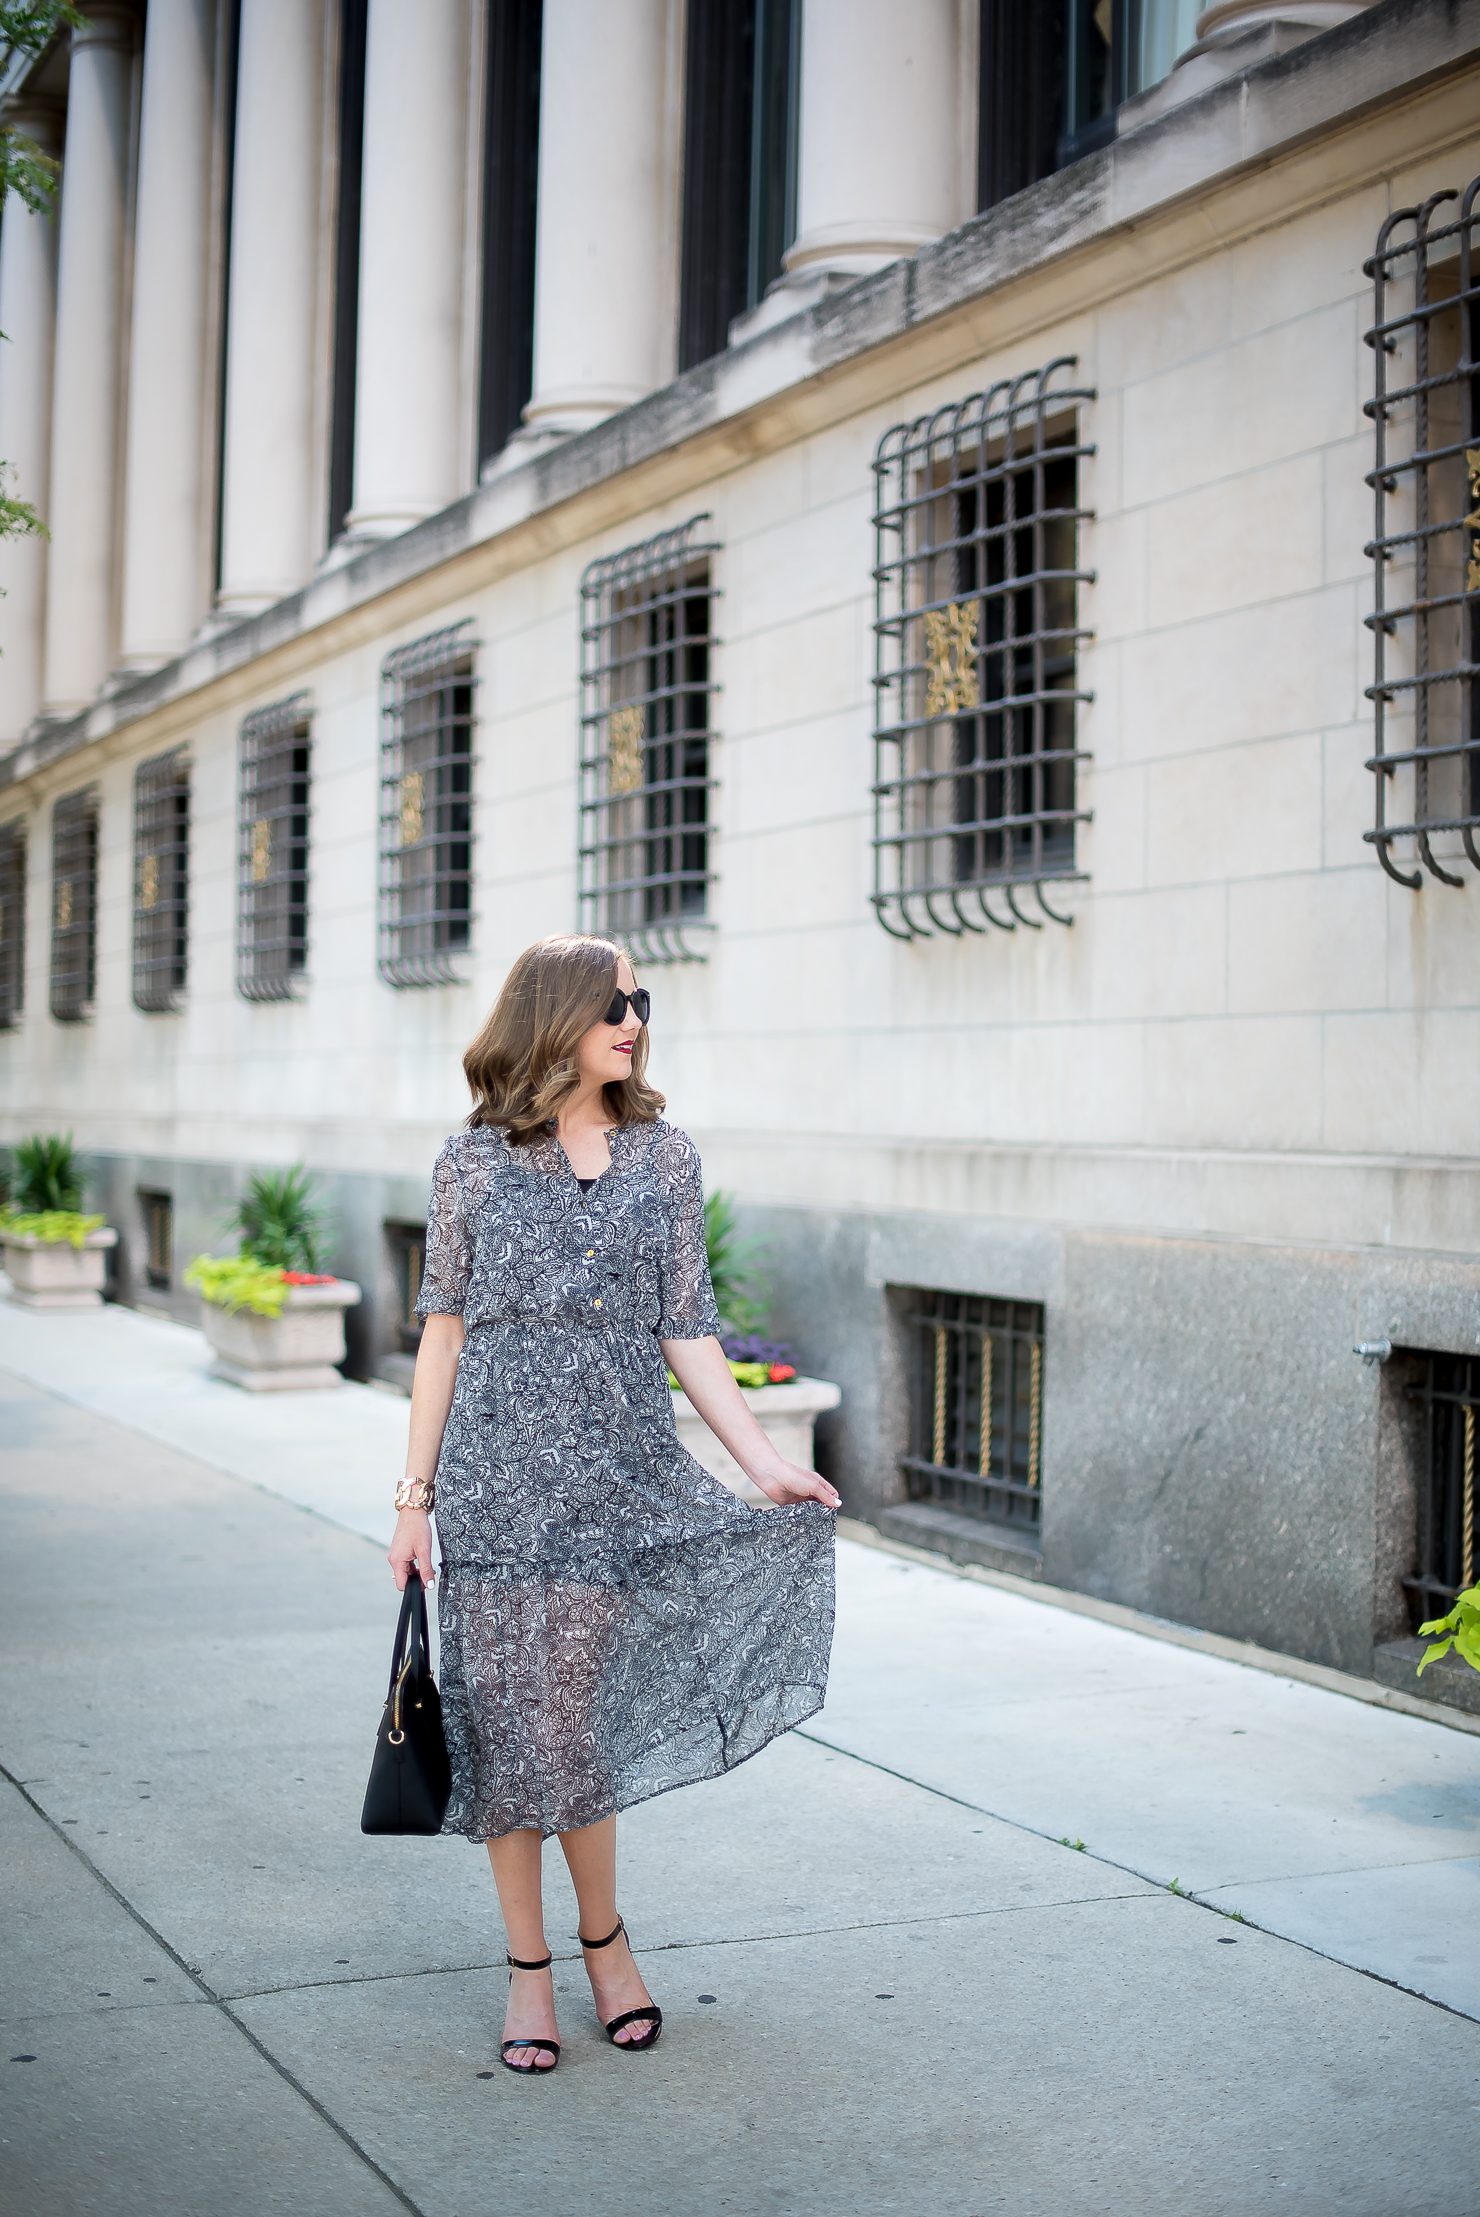 target-who-what-wear-printed-midi-dress-classic-feminine-ladylike-kate-spade-cedar-maise-gold-details-chicago-drake-hotel-8